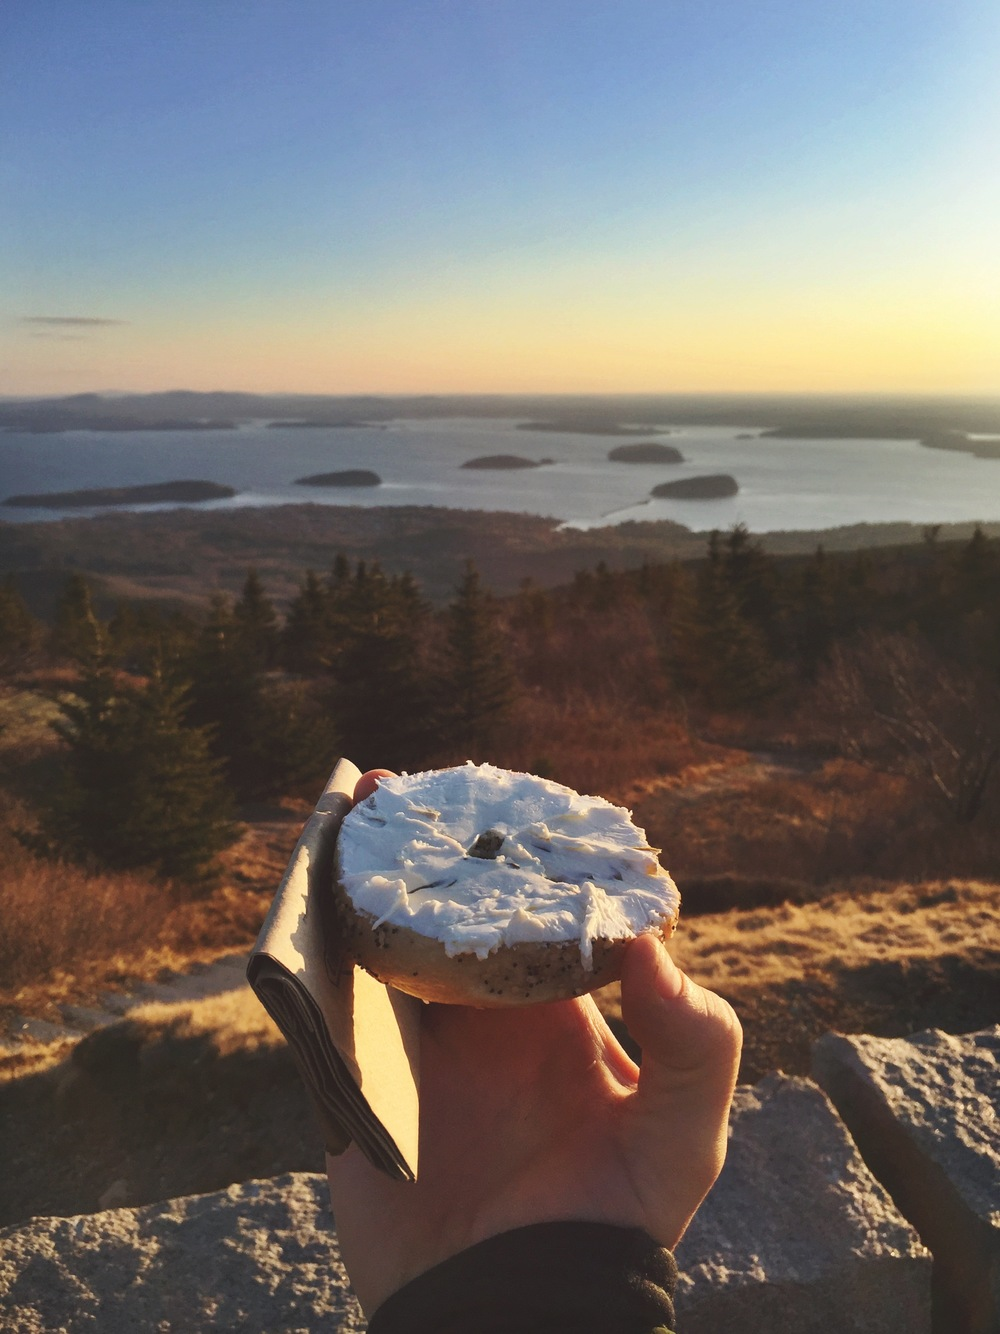 Bagels and cream cheese with a side of incredible view